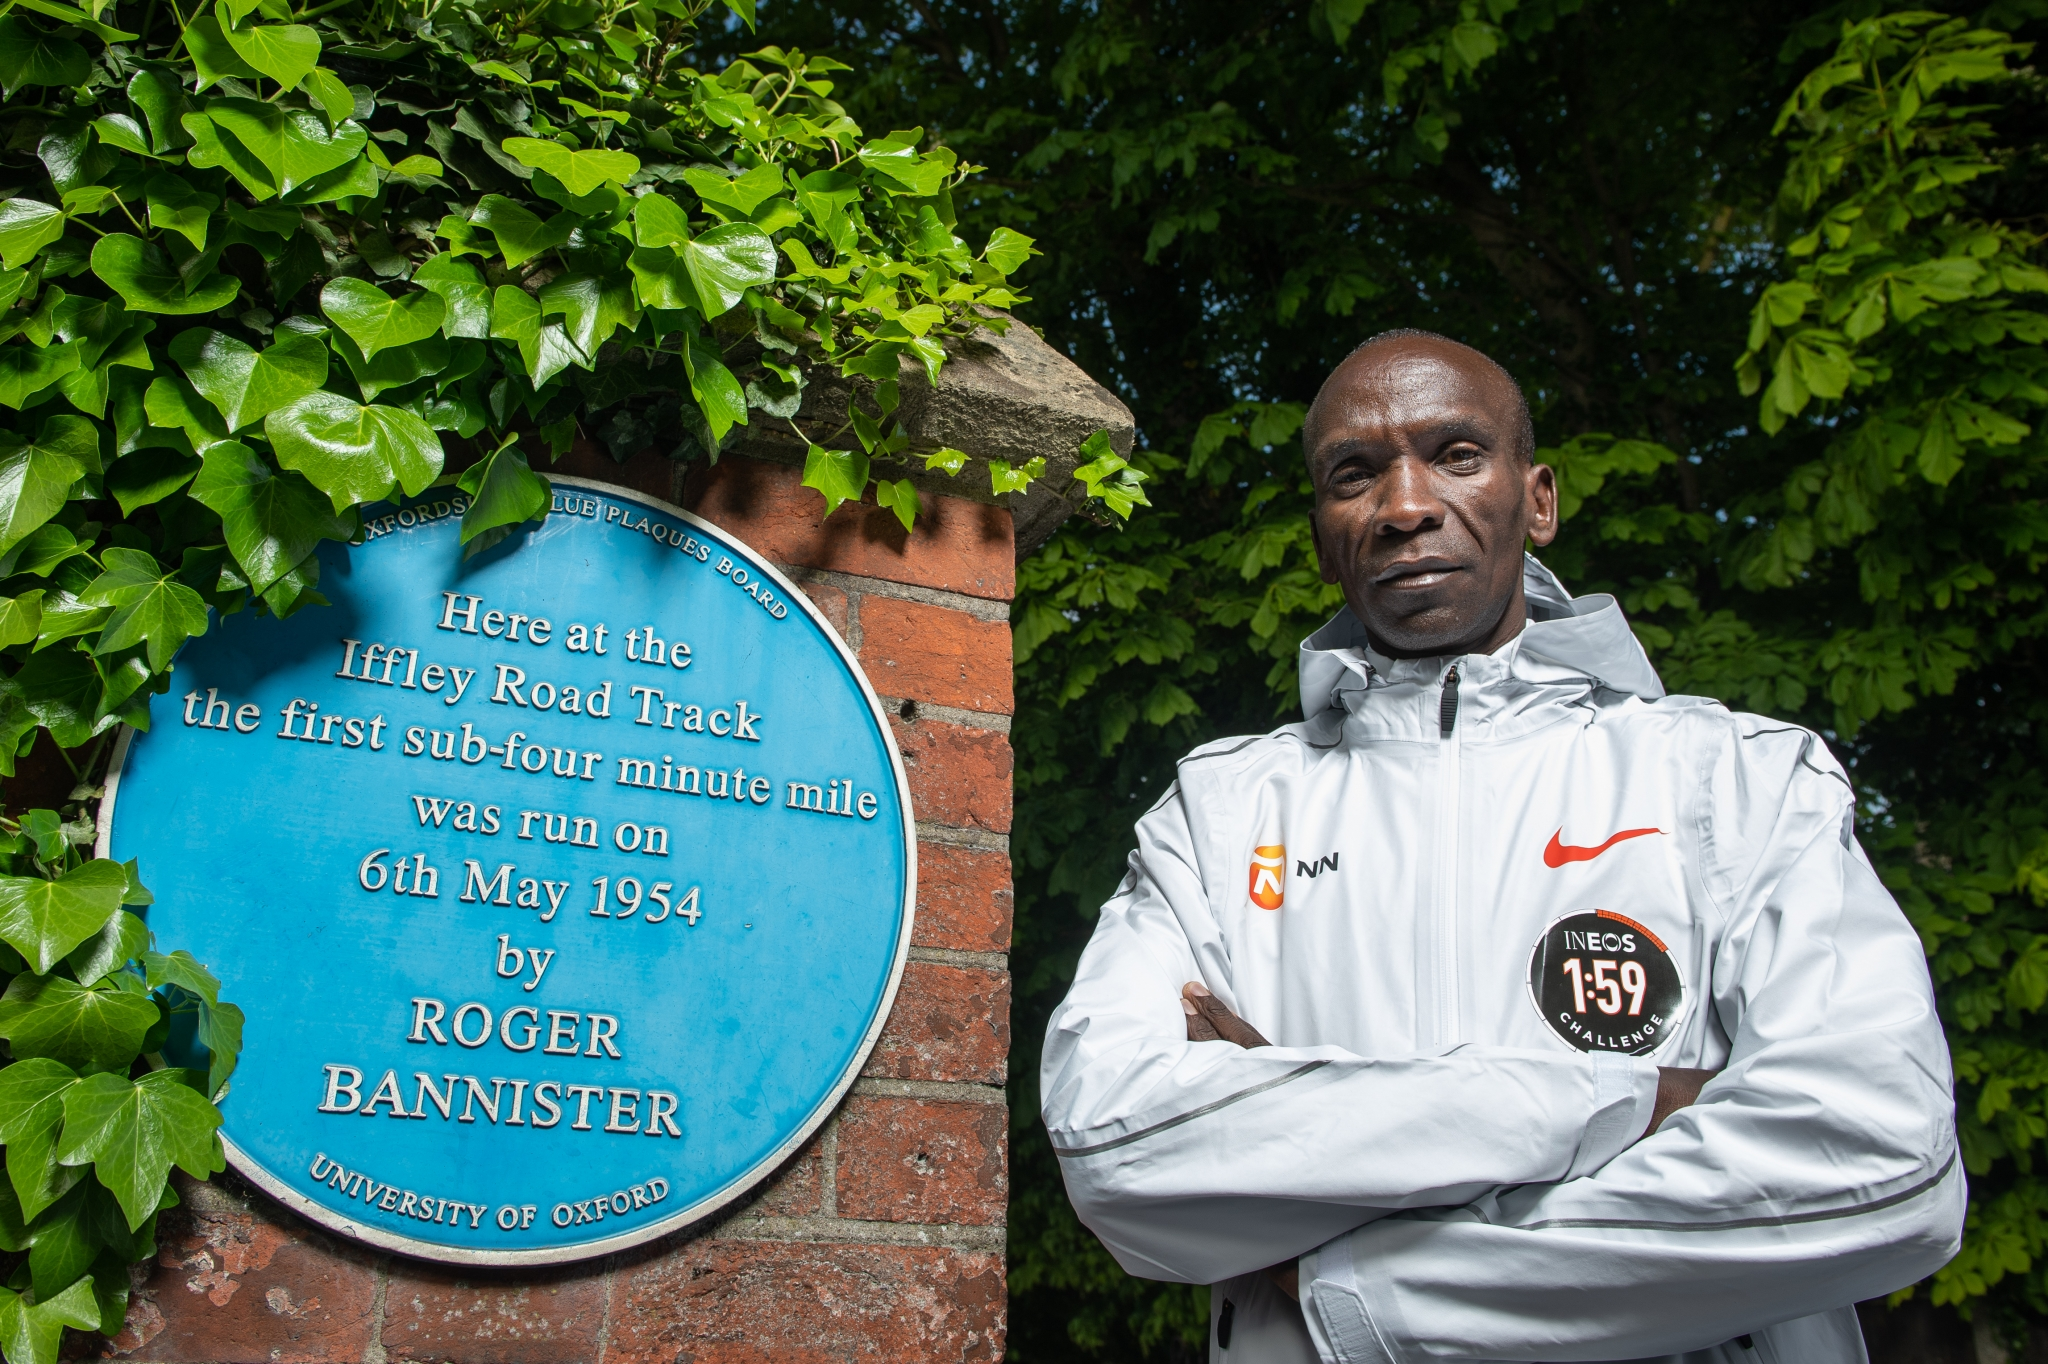 Eliud Kipchoge KEN, with the Roger Bannister blue plaque at the Iffley road running track on the 30th April 2019. Photo: Thomas Lovelock for london marathon events